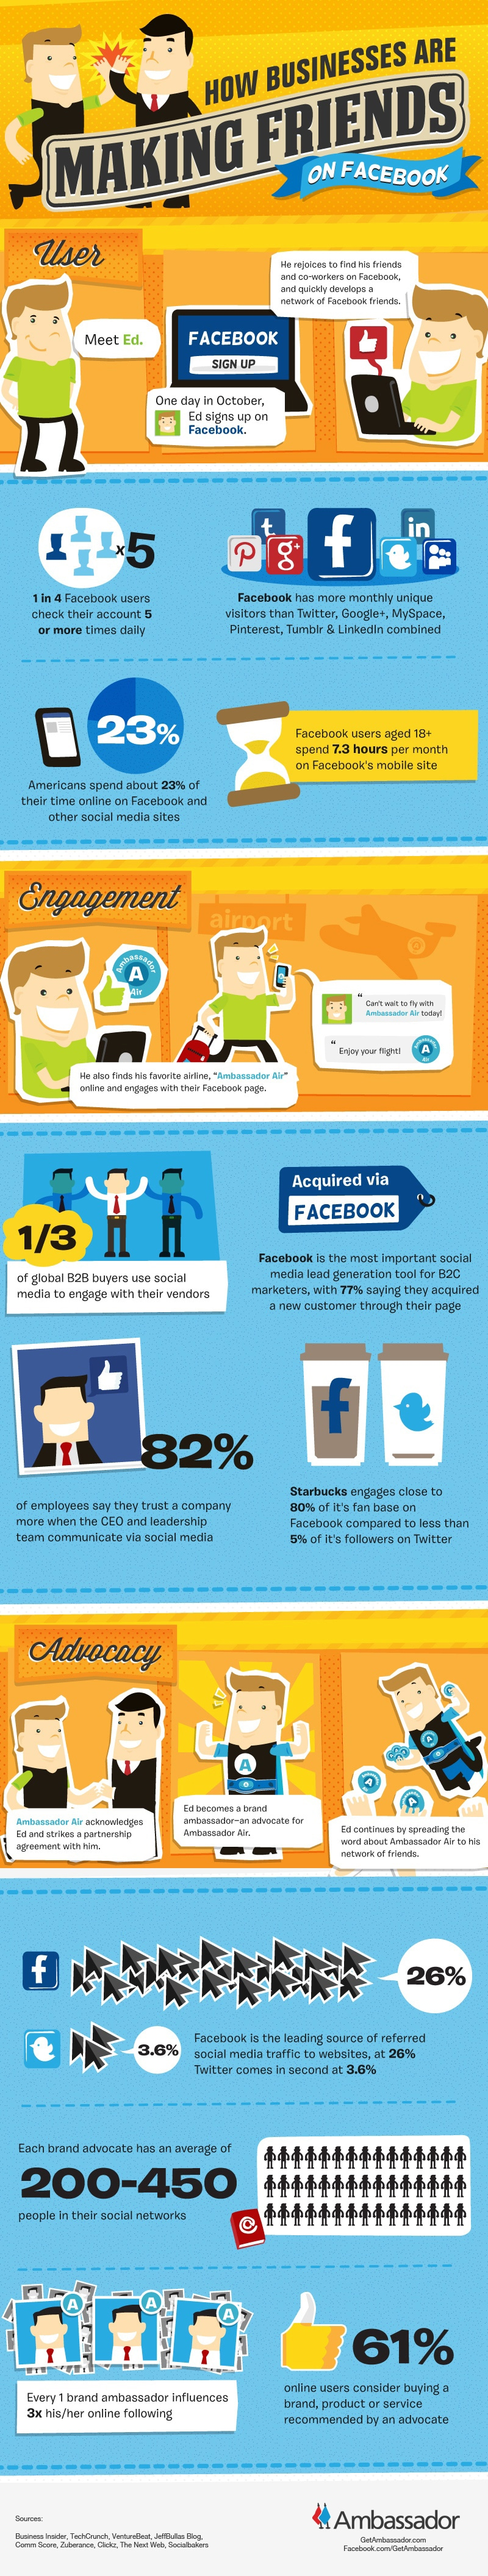 Making More Friends On Facebook As A Business [Infographic]